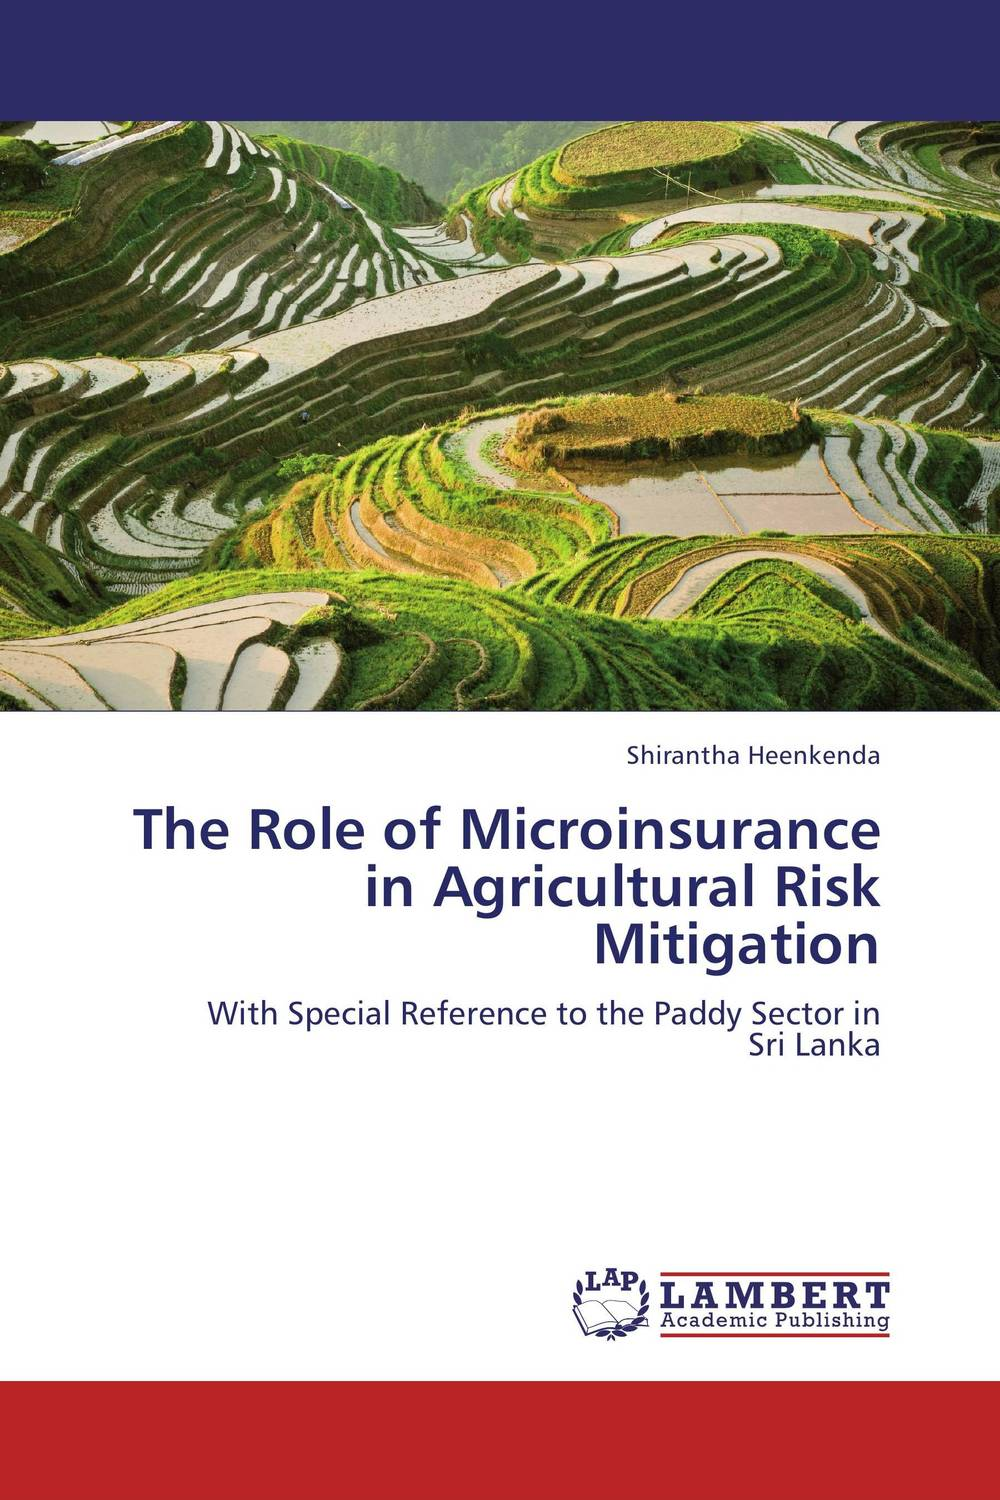 The Role of Microinsurance in Agricultural Risk Mitigation